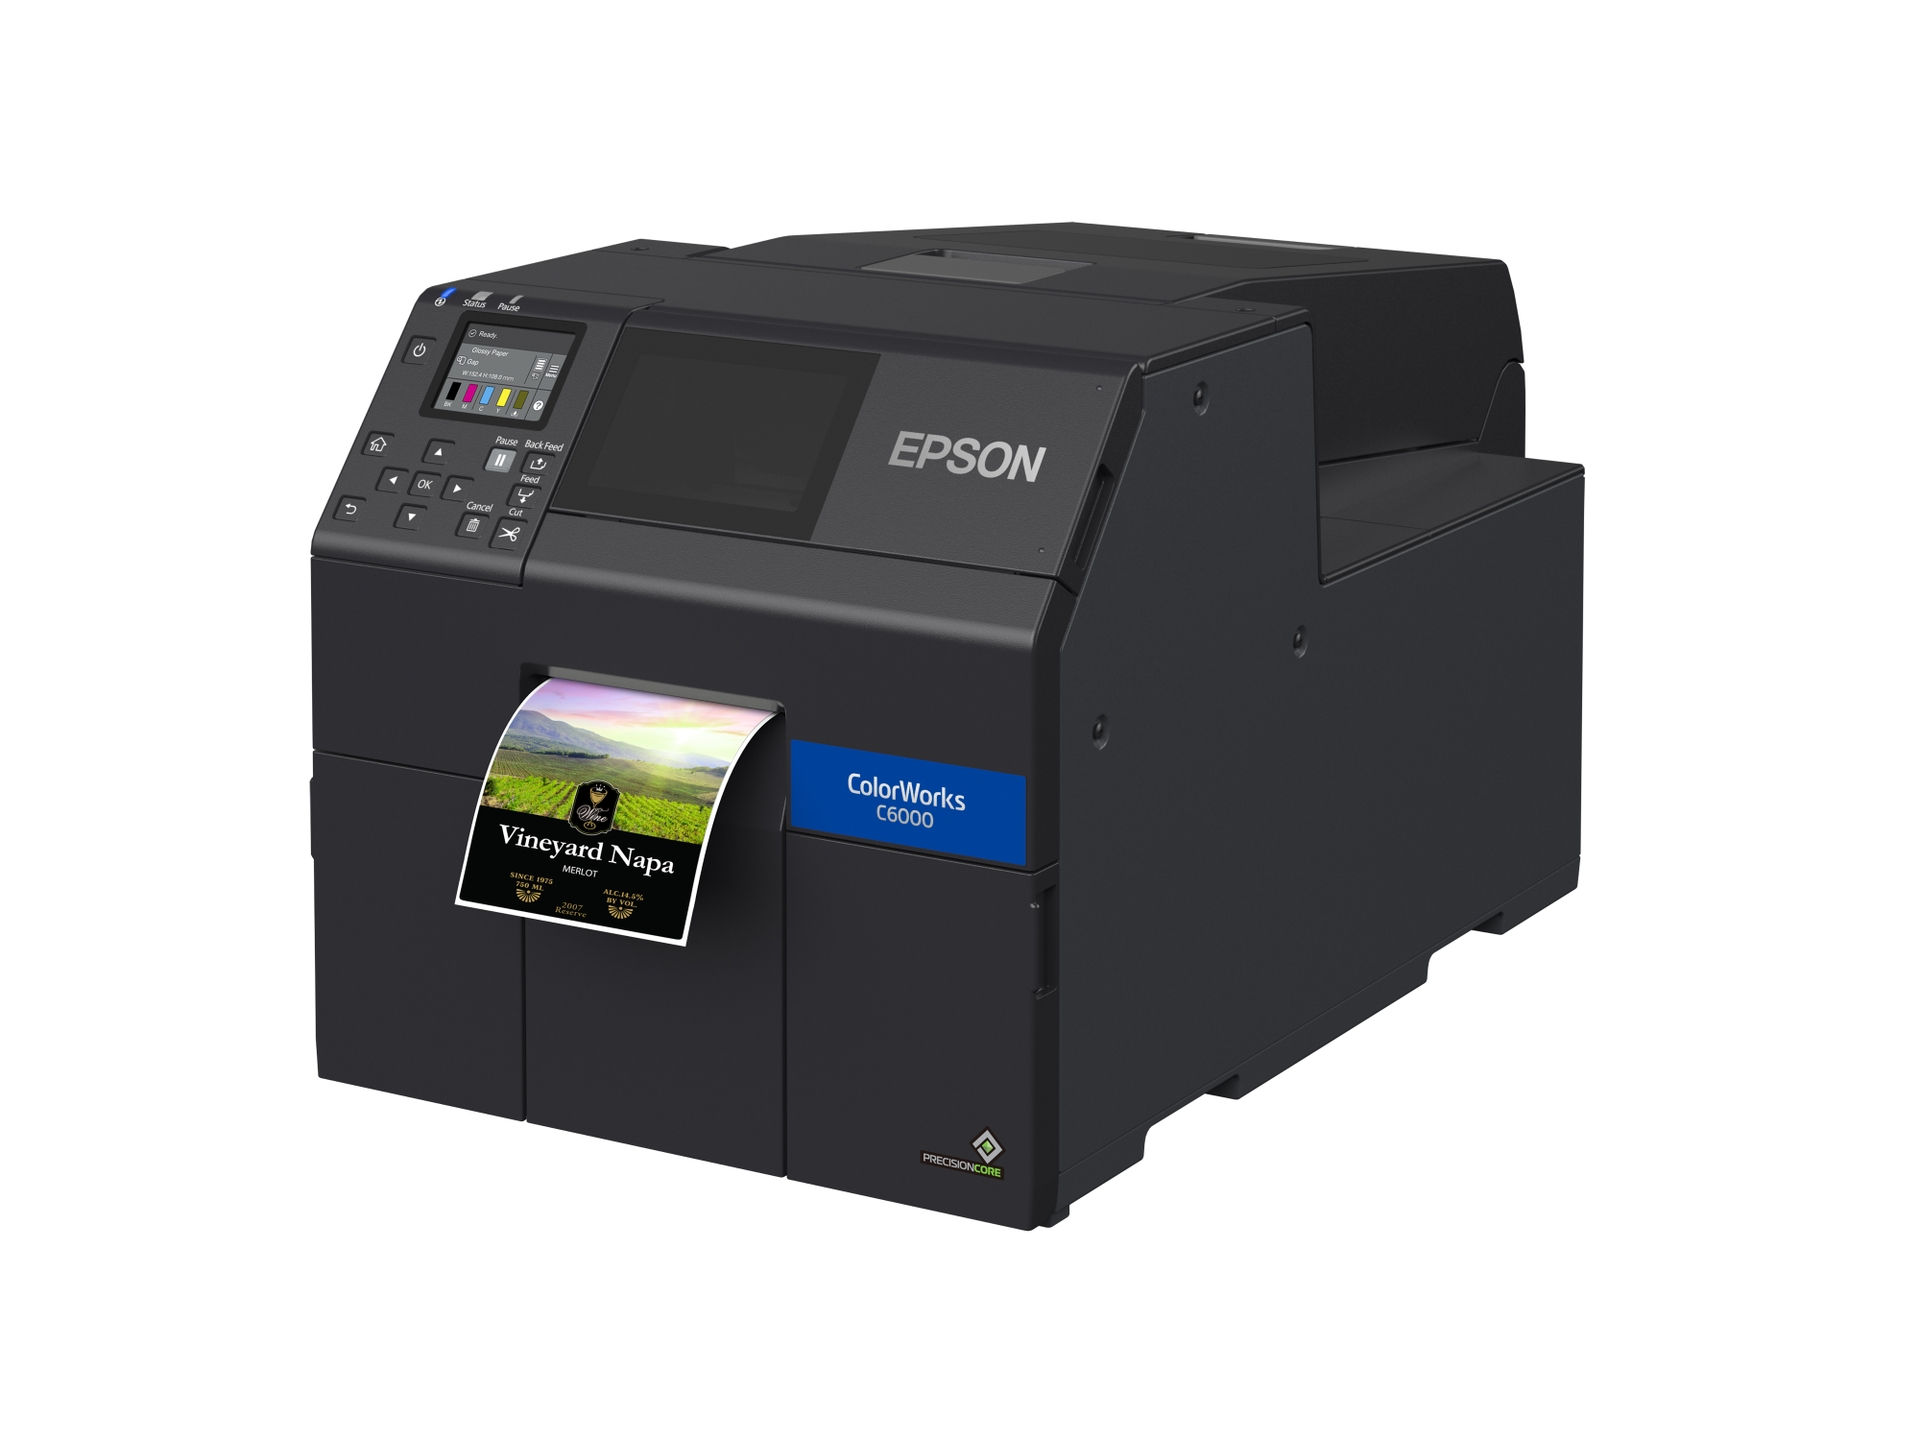 Epson ColorWorks C6000A 4-Inch Color Inkjet Label Printer with Auto Cutter